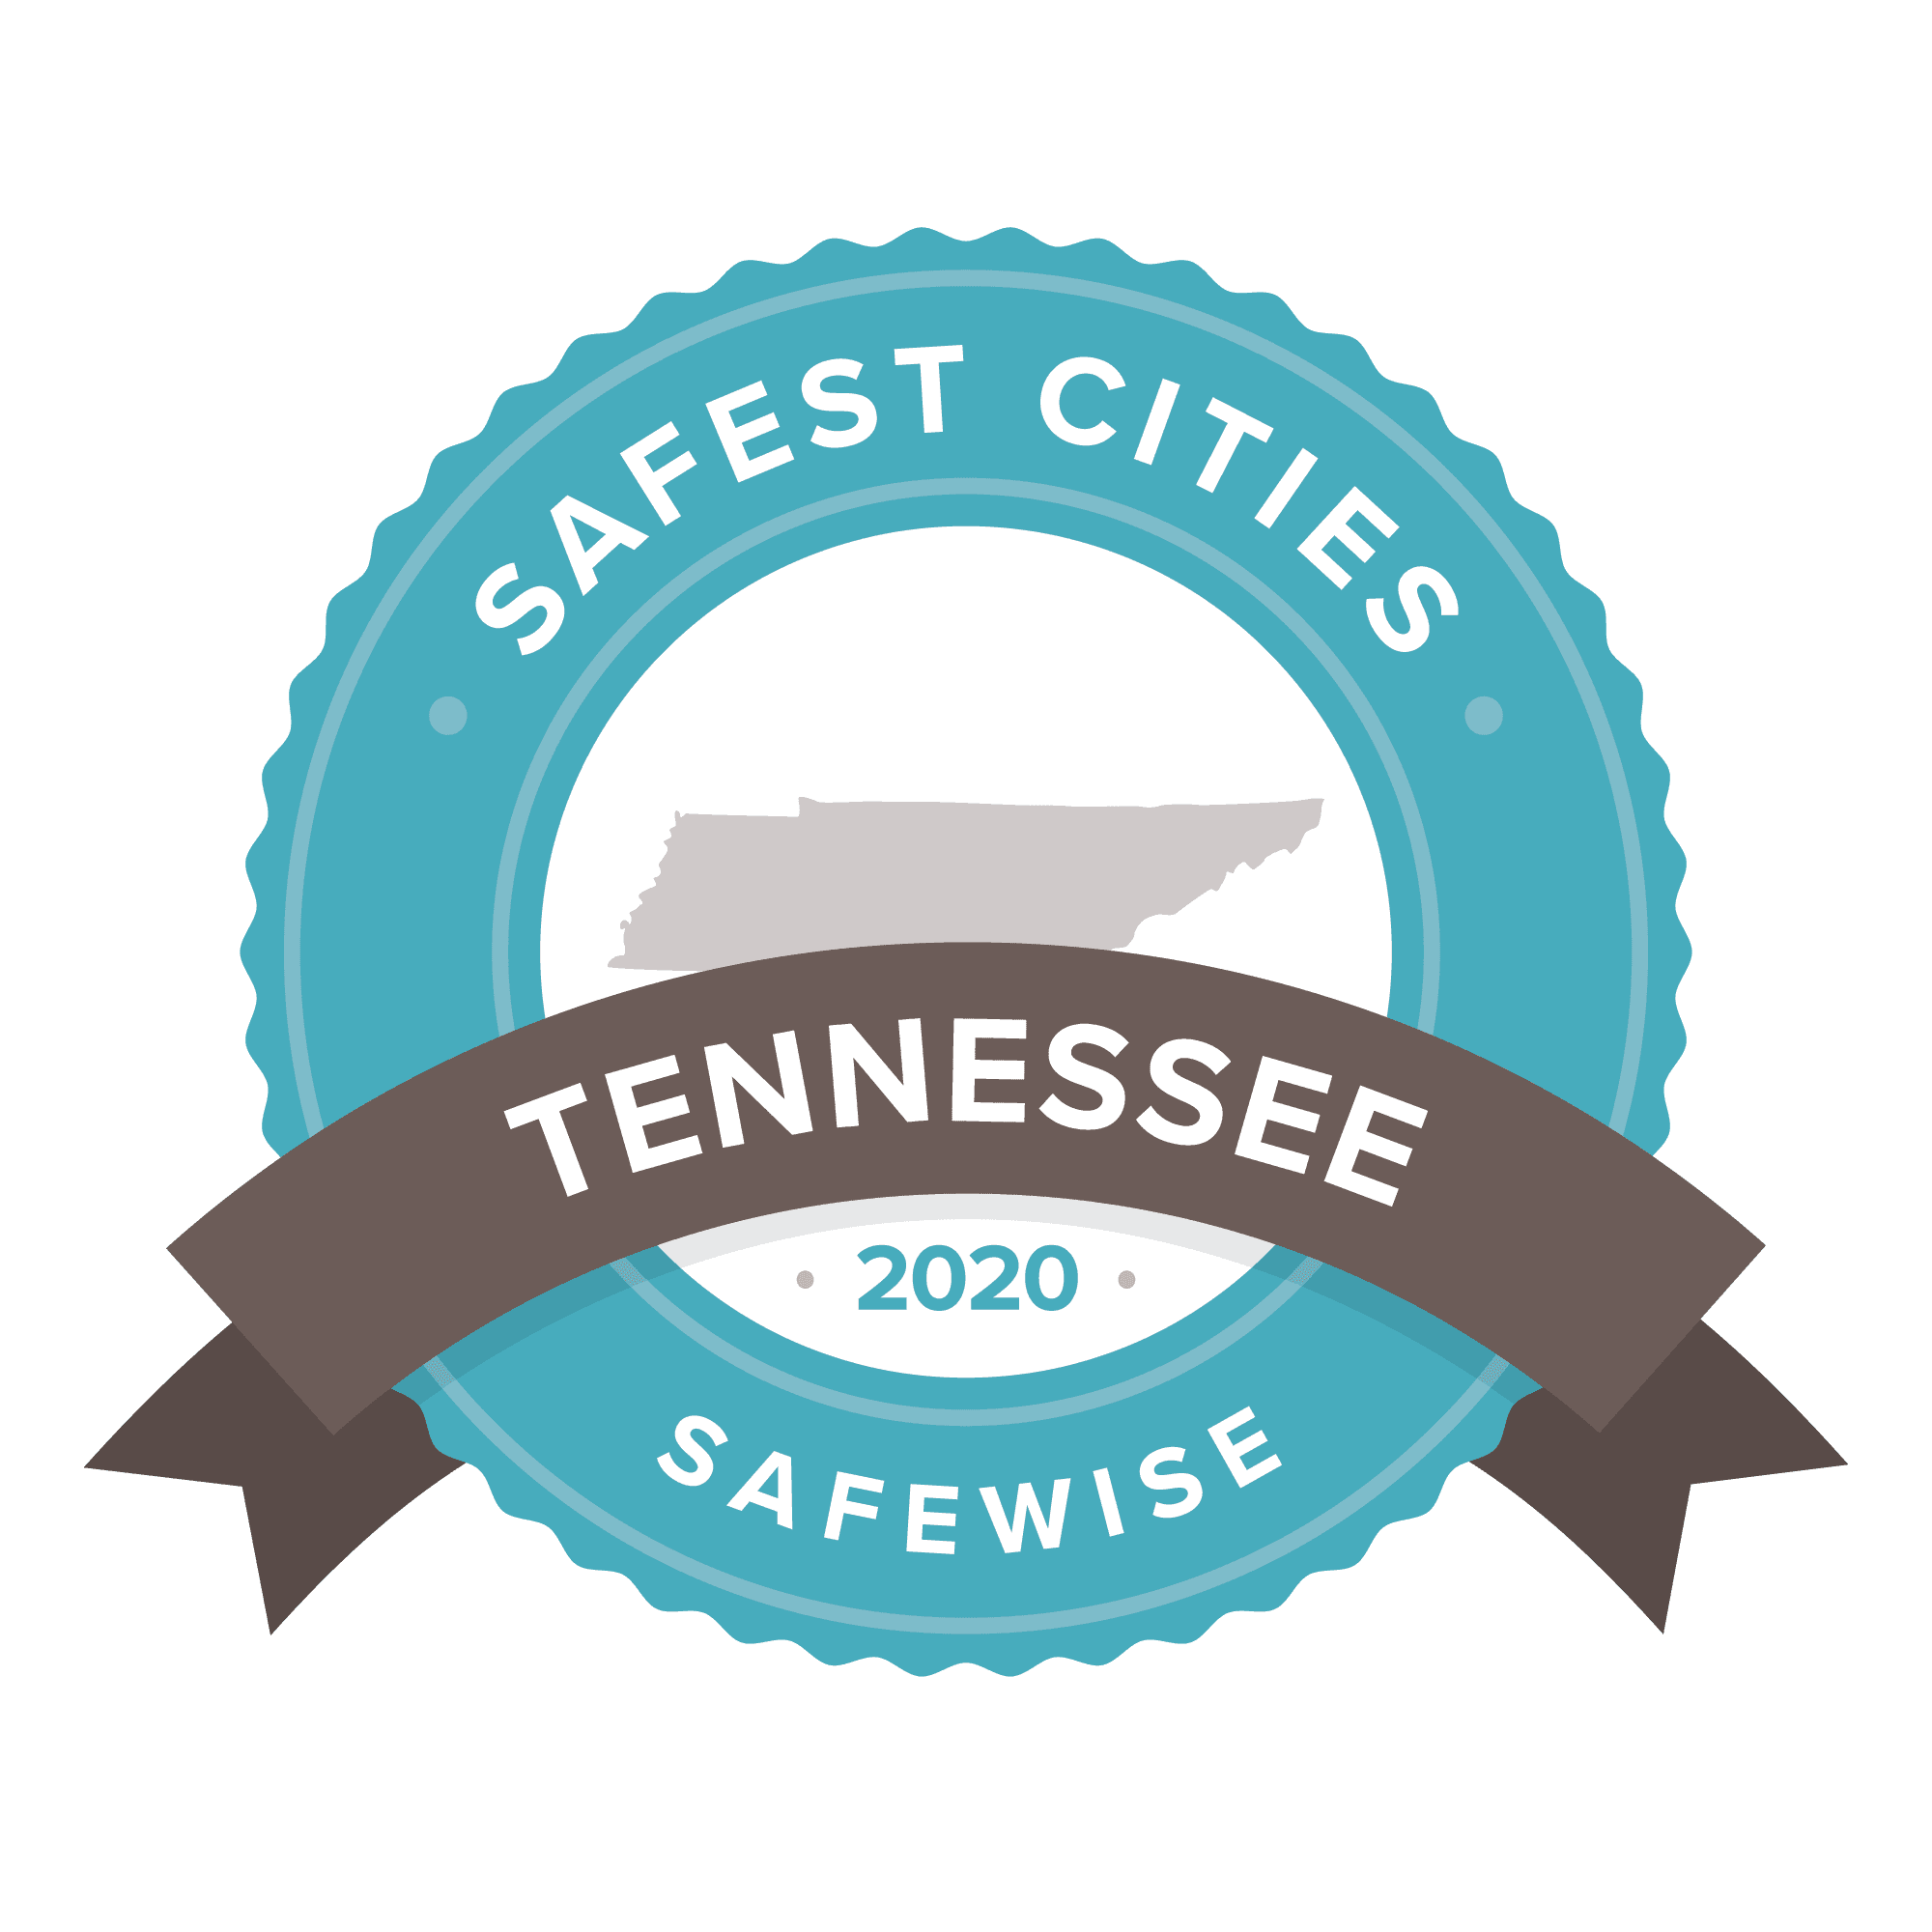 Tennessee-badge-SafeWise-2020 (1)